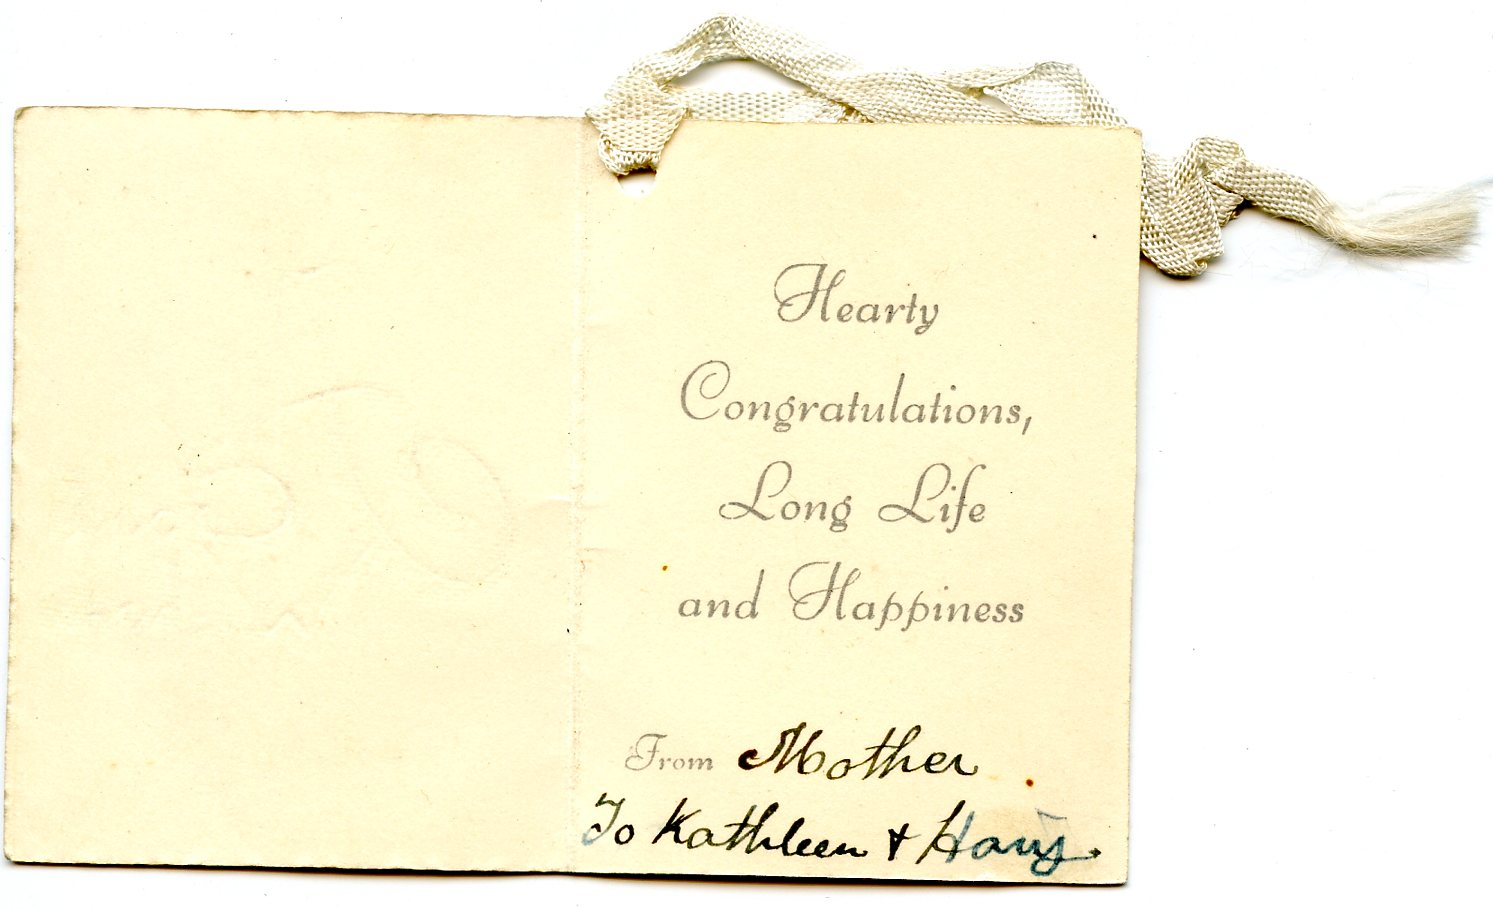 CROUT K And H Message In Wedding Card Seeking Susan